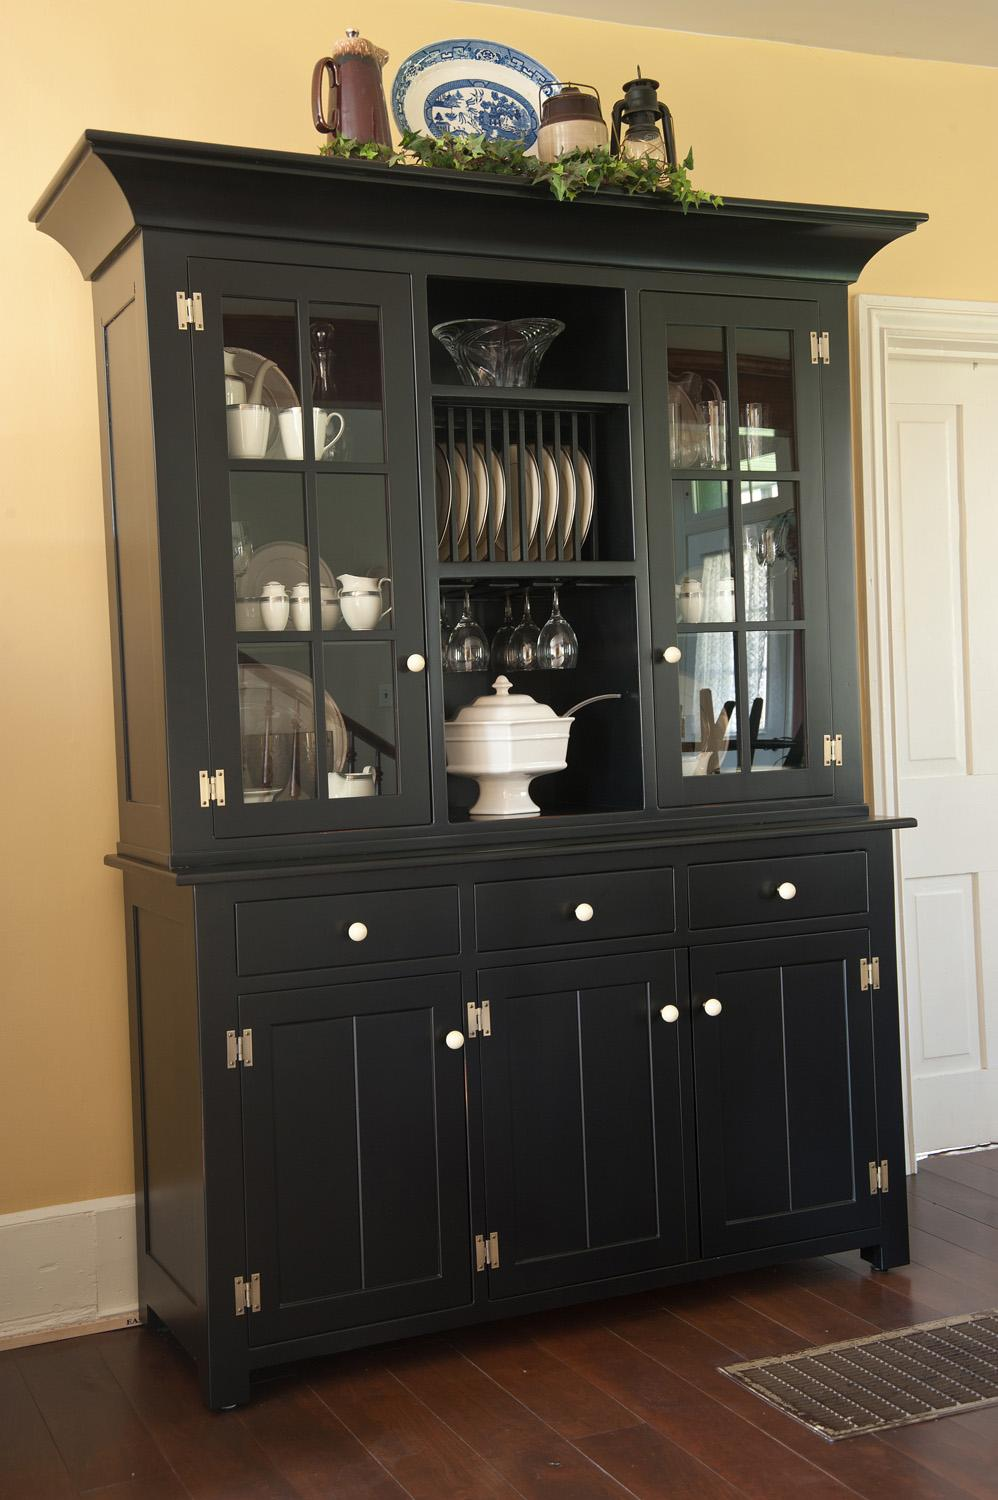 Beautiful hutch for kitchen and dining accessories